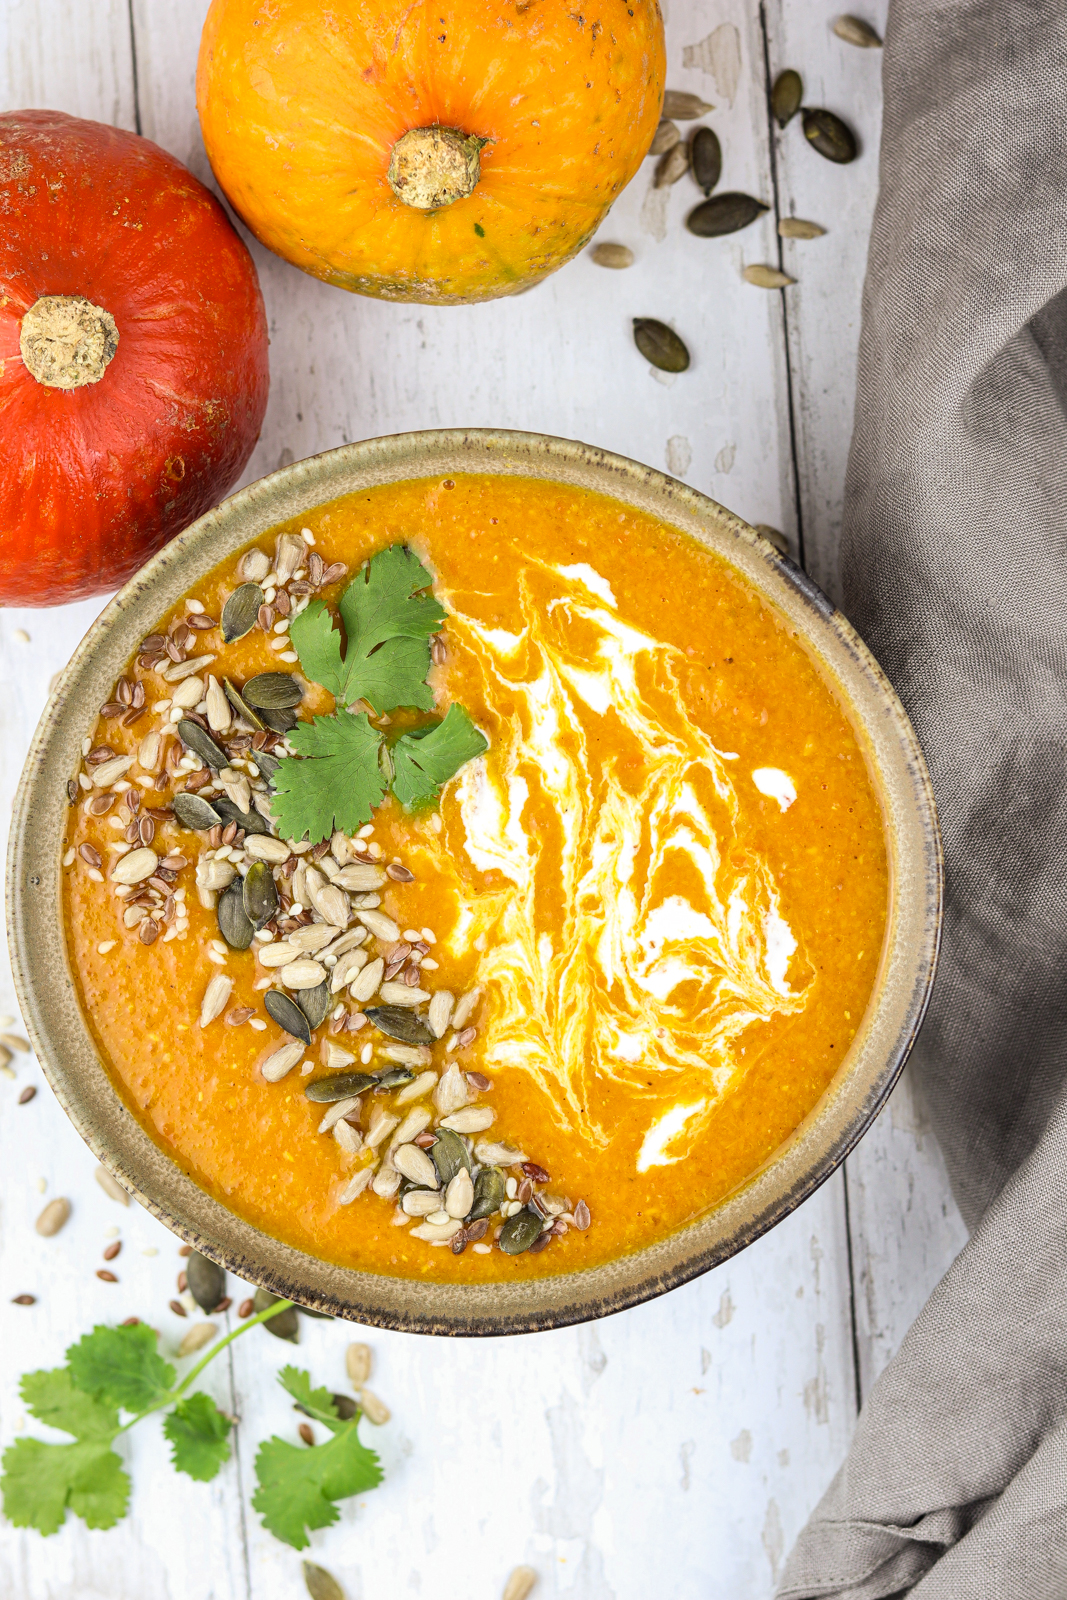 This recipe for pumpkin lentil soup only takes 30-40 minutes to prepare and contains lots of important nutritions. Besides that it's super healthy, it's also super delicious!